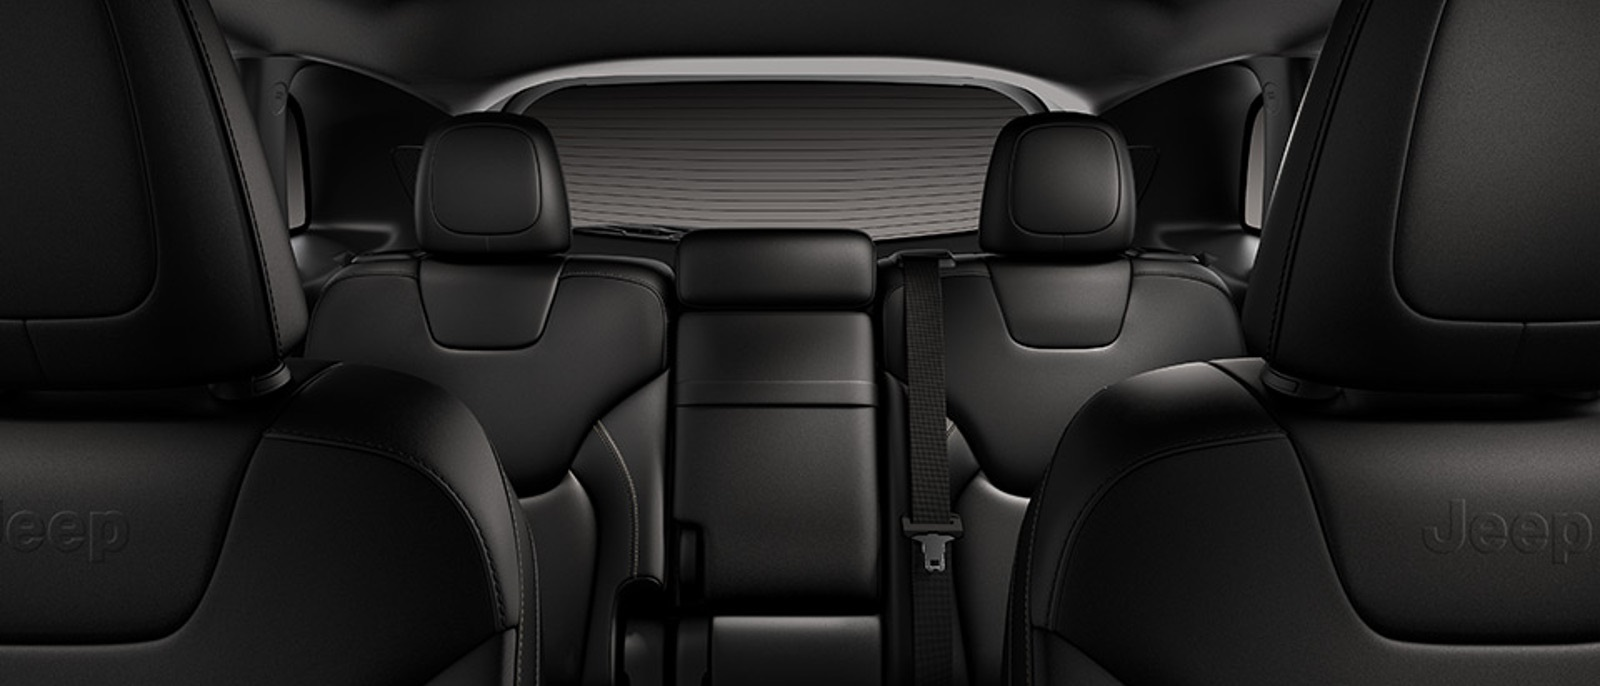 2015-jeep-cherokee-seats